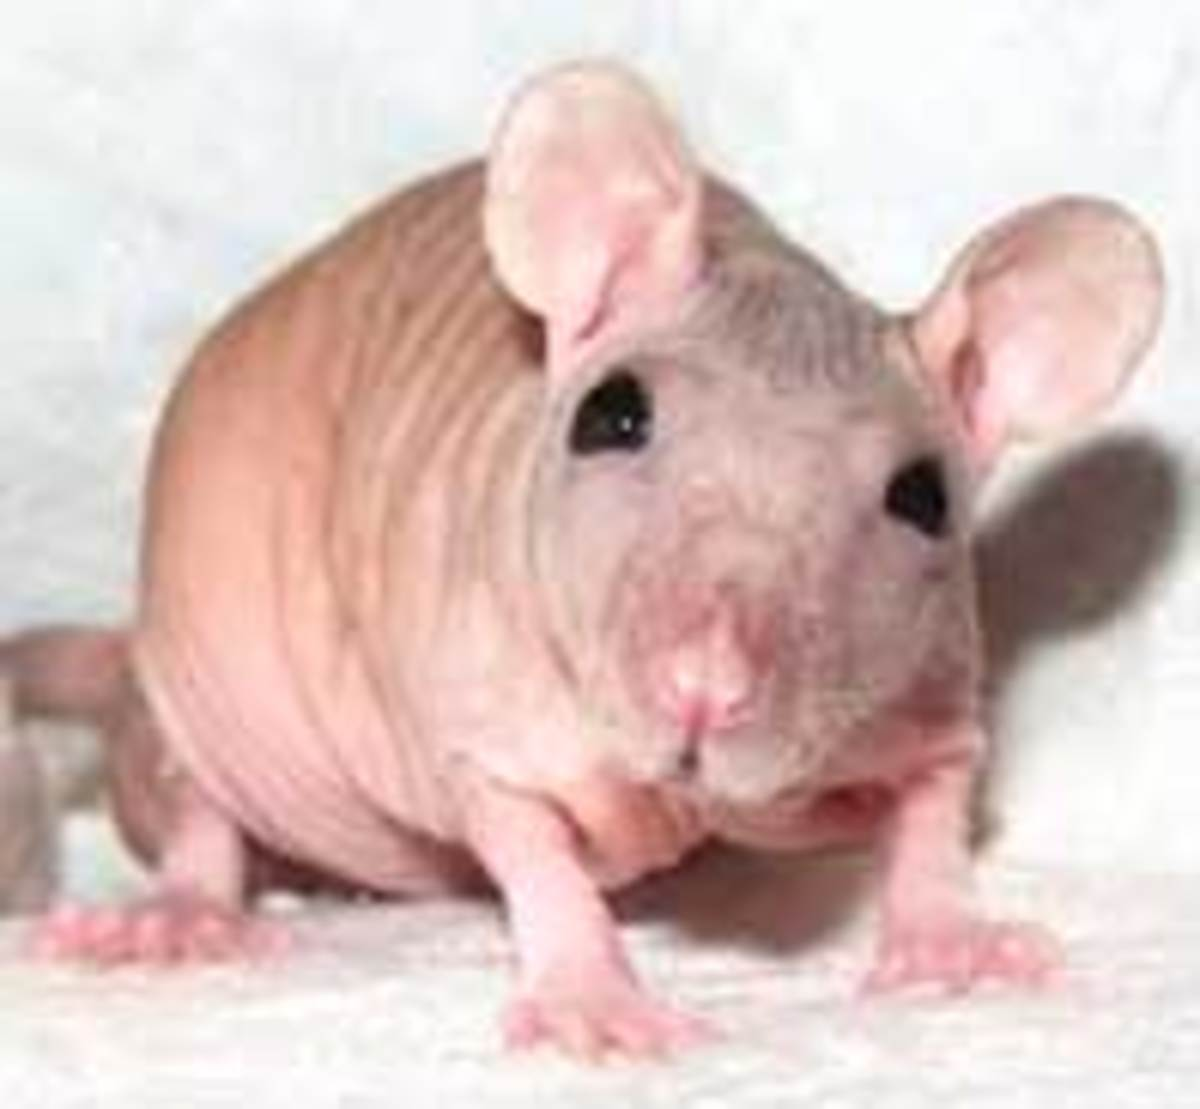 Most owners report that hairless rats are just as smart and endearing as other rats.